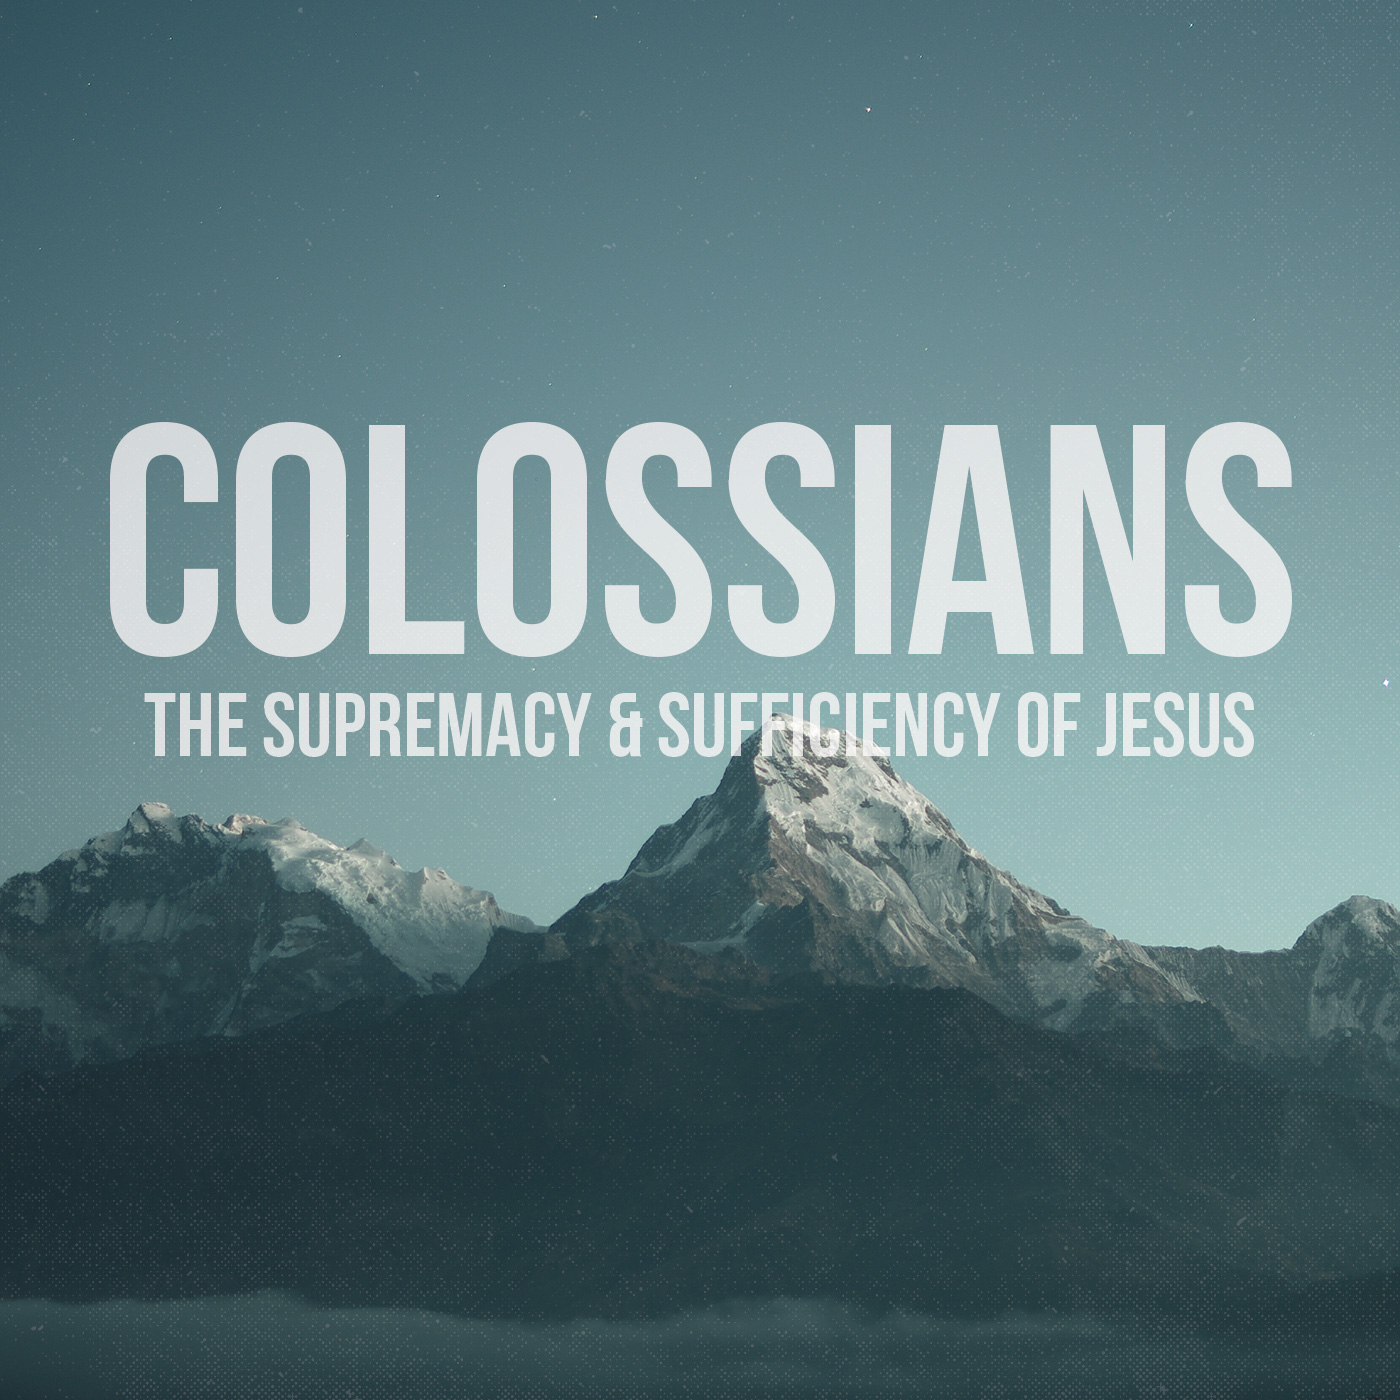 Colossians---Insta-2.jpg